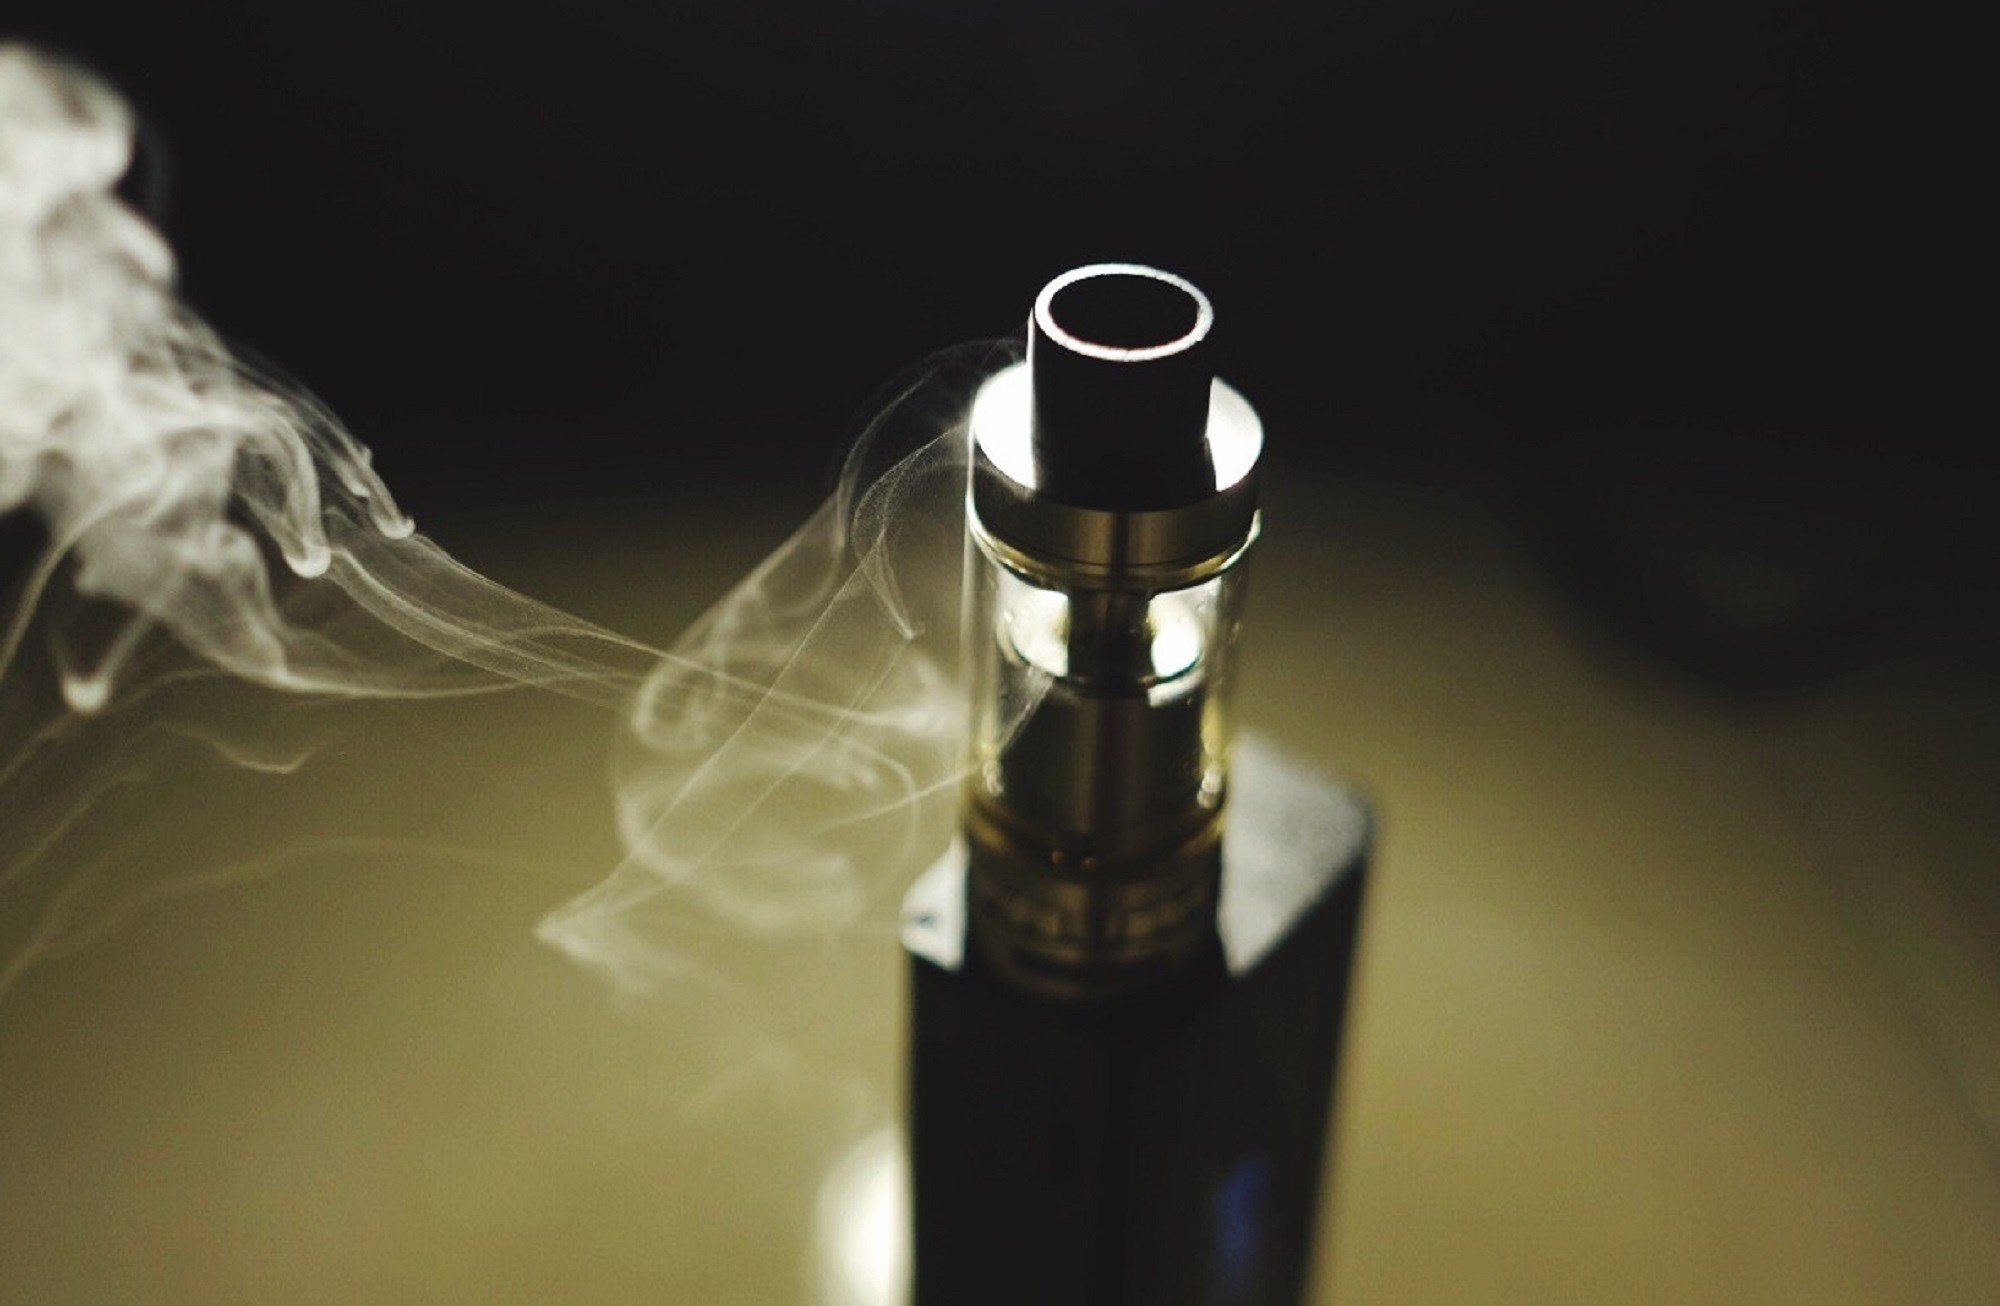 There was a large increase in sales of electronic cigarettes and related products in the United States in recent years as their prices fell.